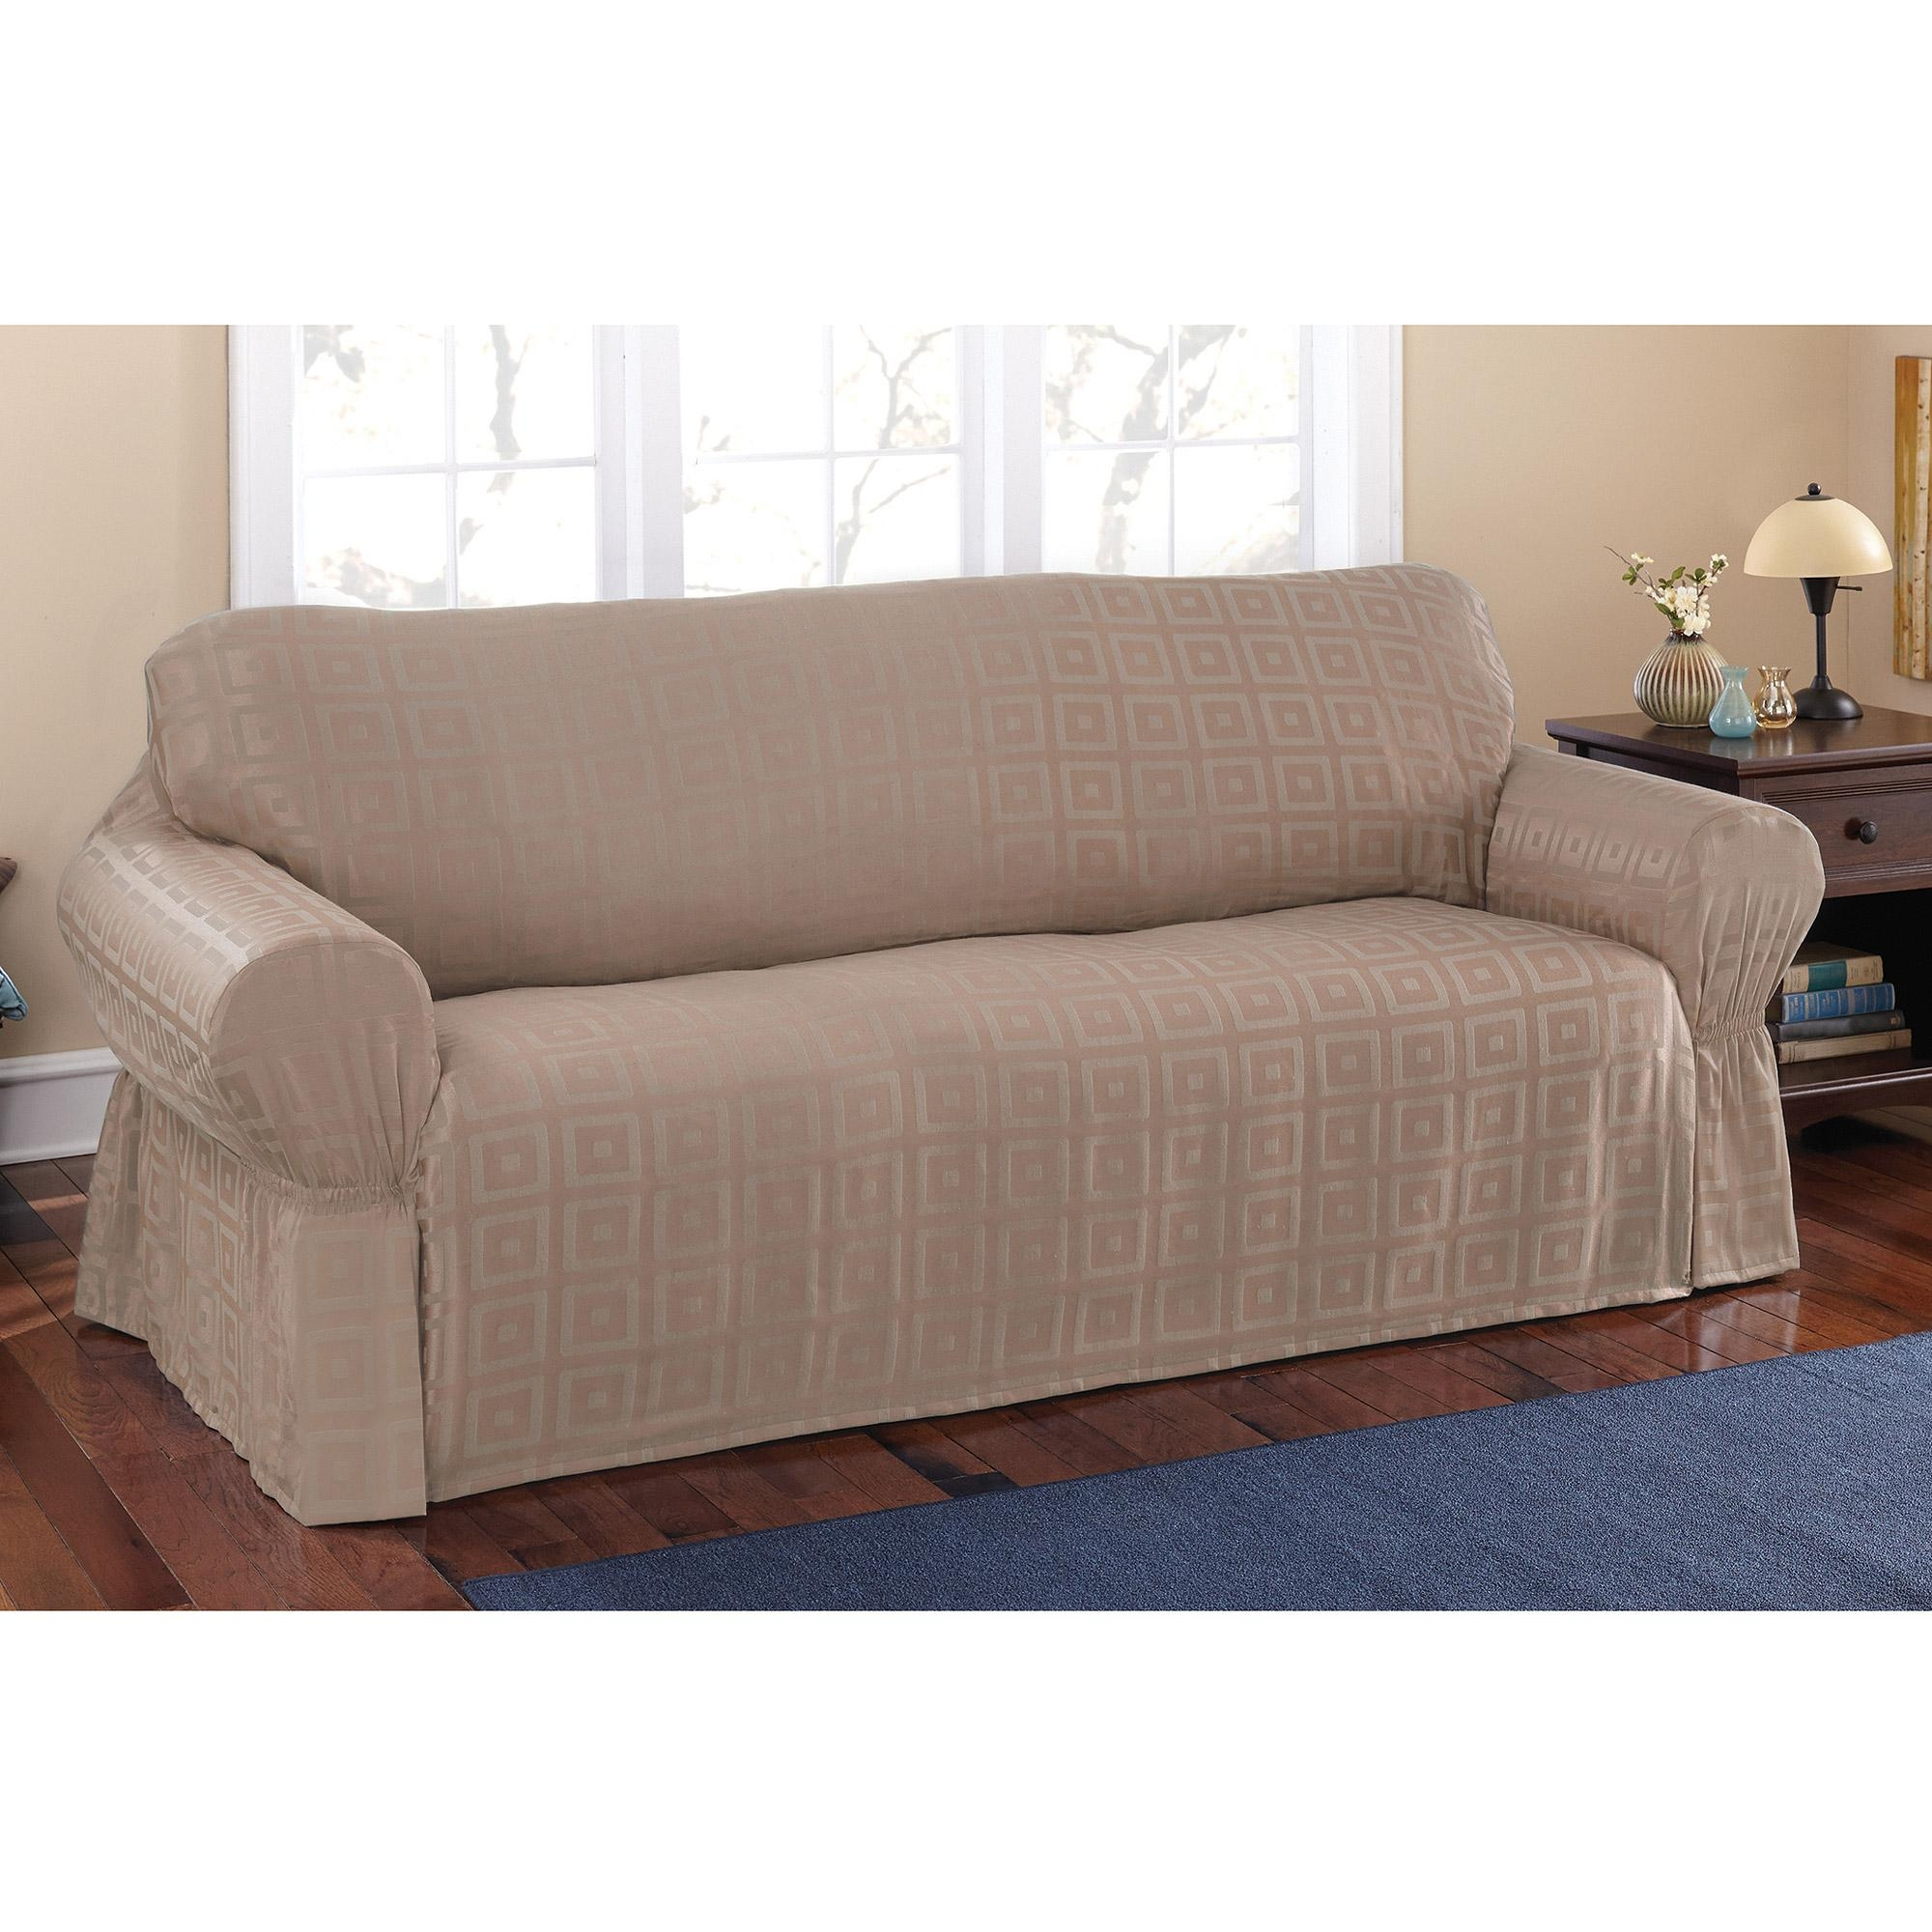 Mainstays Sherwood Slipcover Sofa – Walmart In Wallmart Sofa (Image 15 of 20)